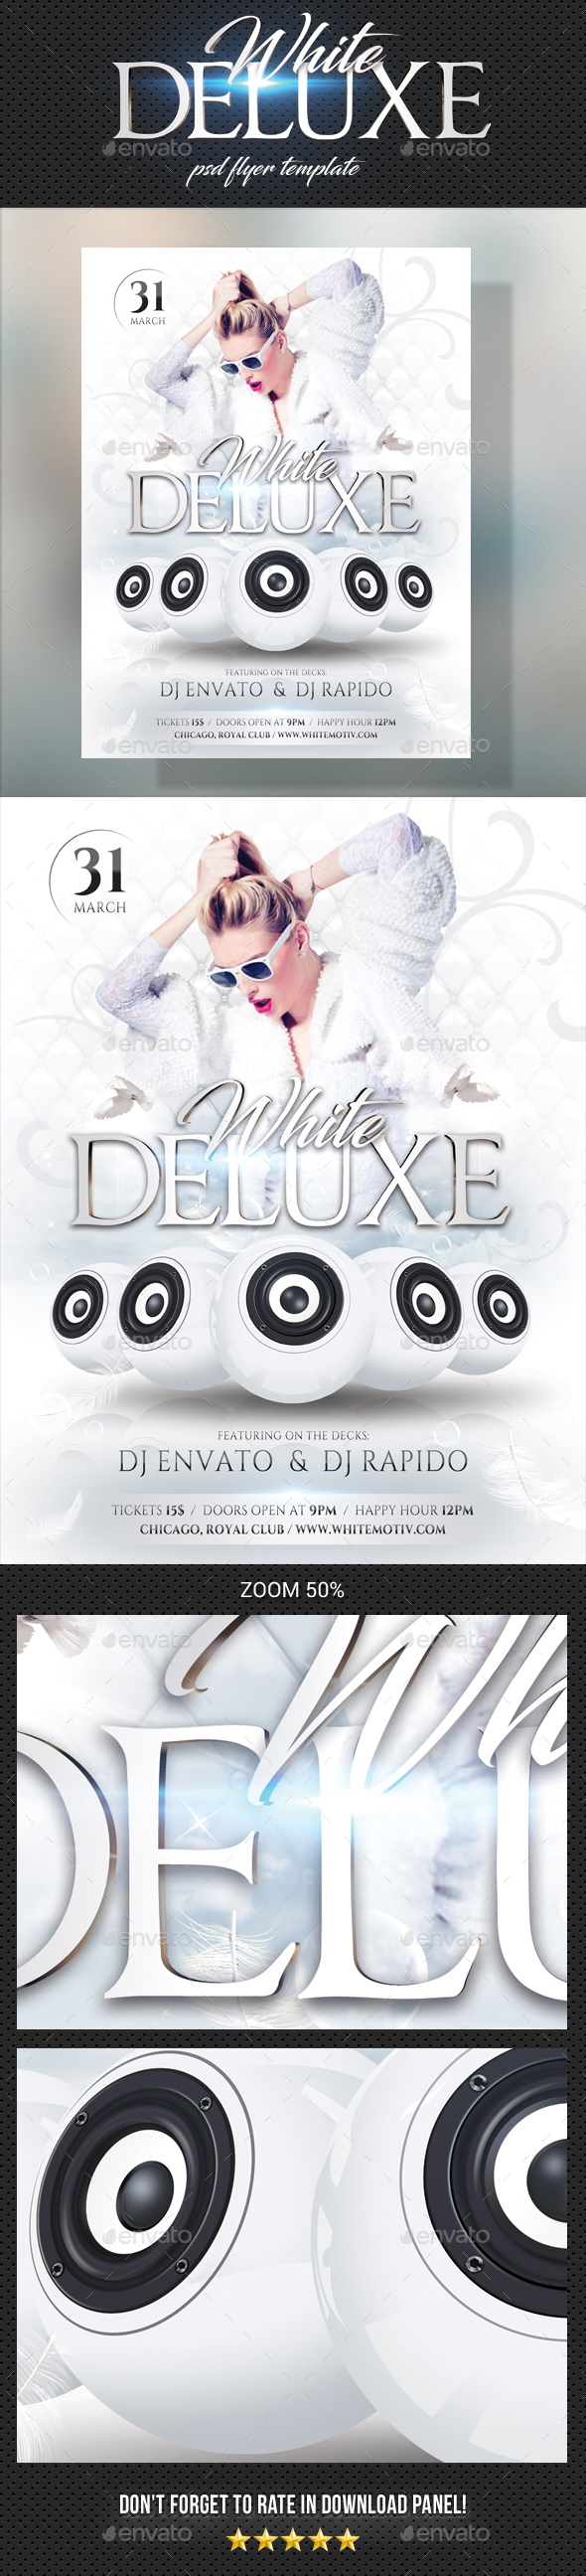 White Deluxe Flyer - Clubs & Parties Events